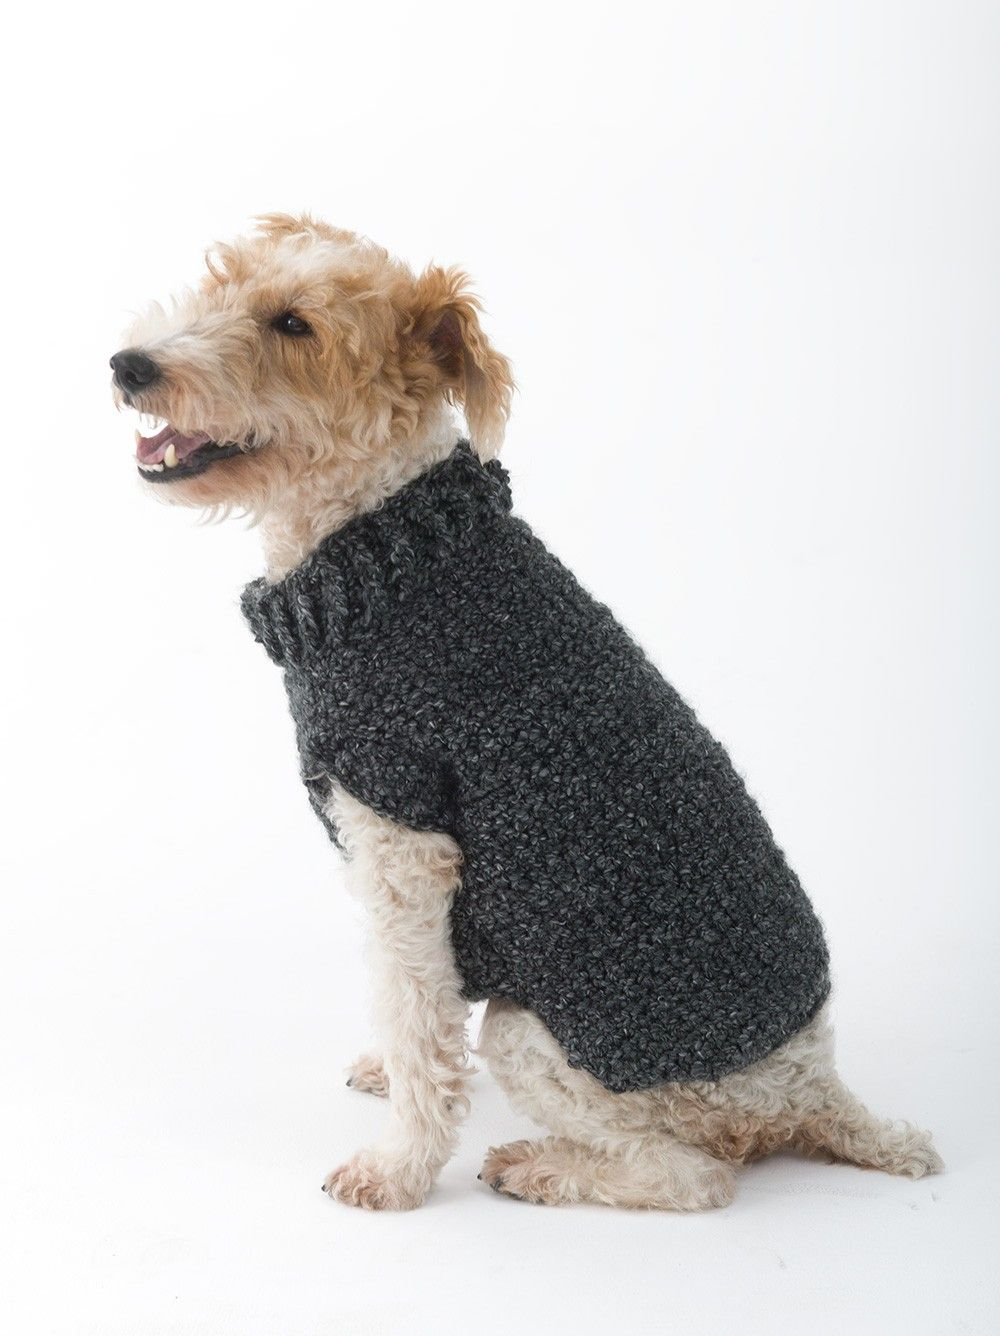 The Poet Dog Sweater (Crochet) Free pattern | Animals - Dogs | Pinterest